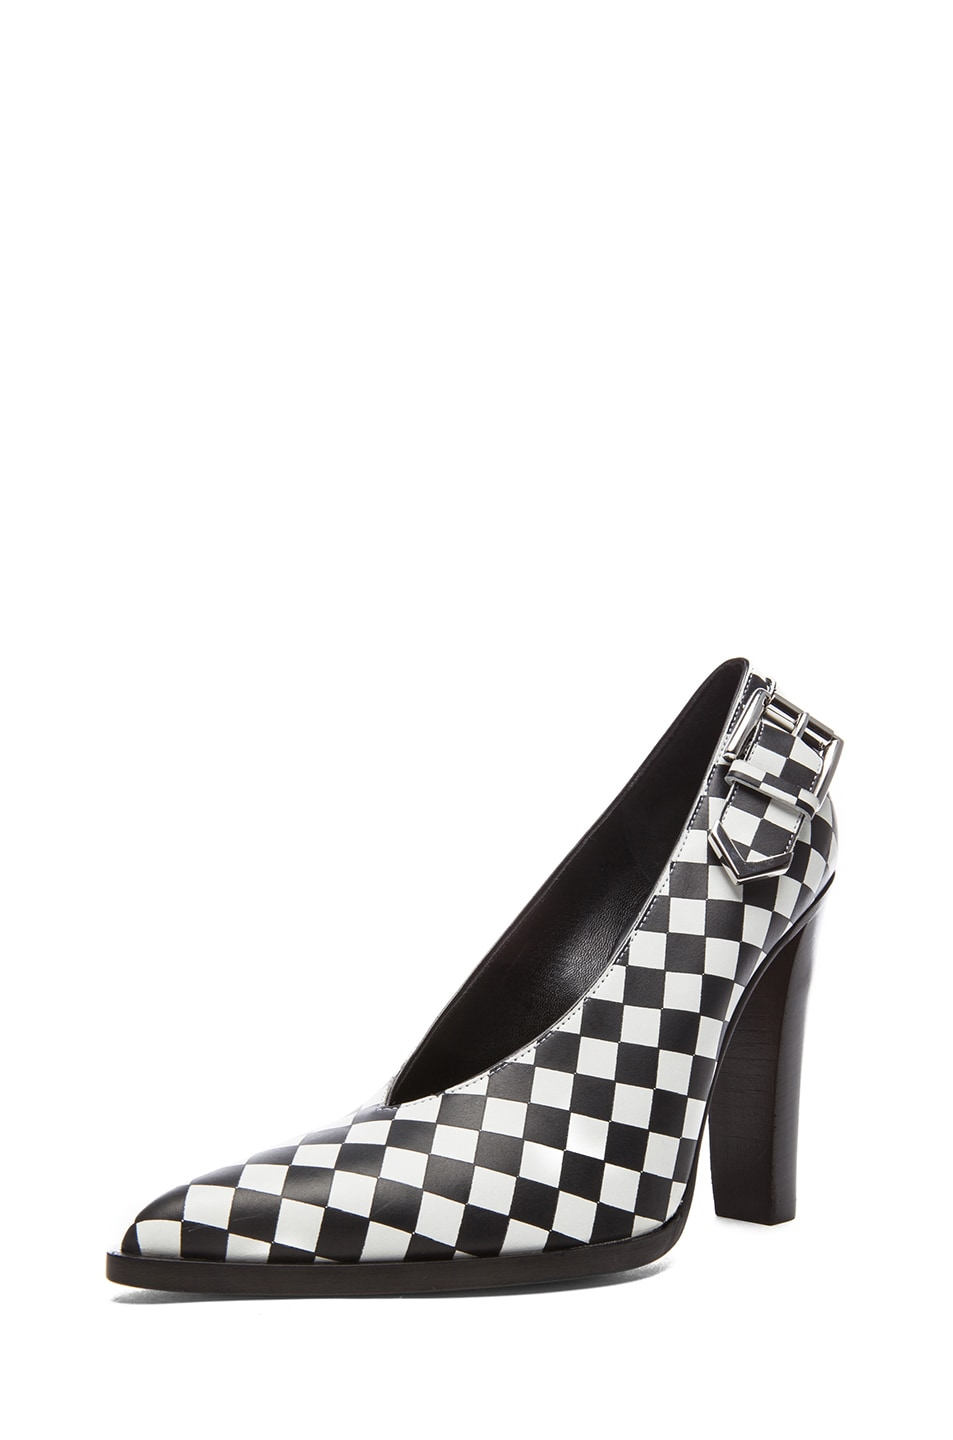 Image 2 of Altuzarra Leather Heels in Check